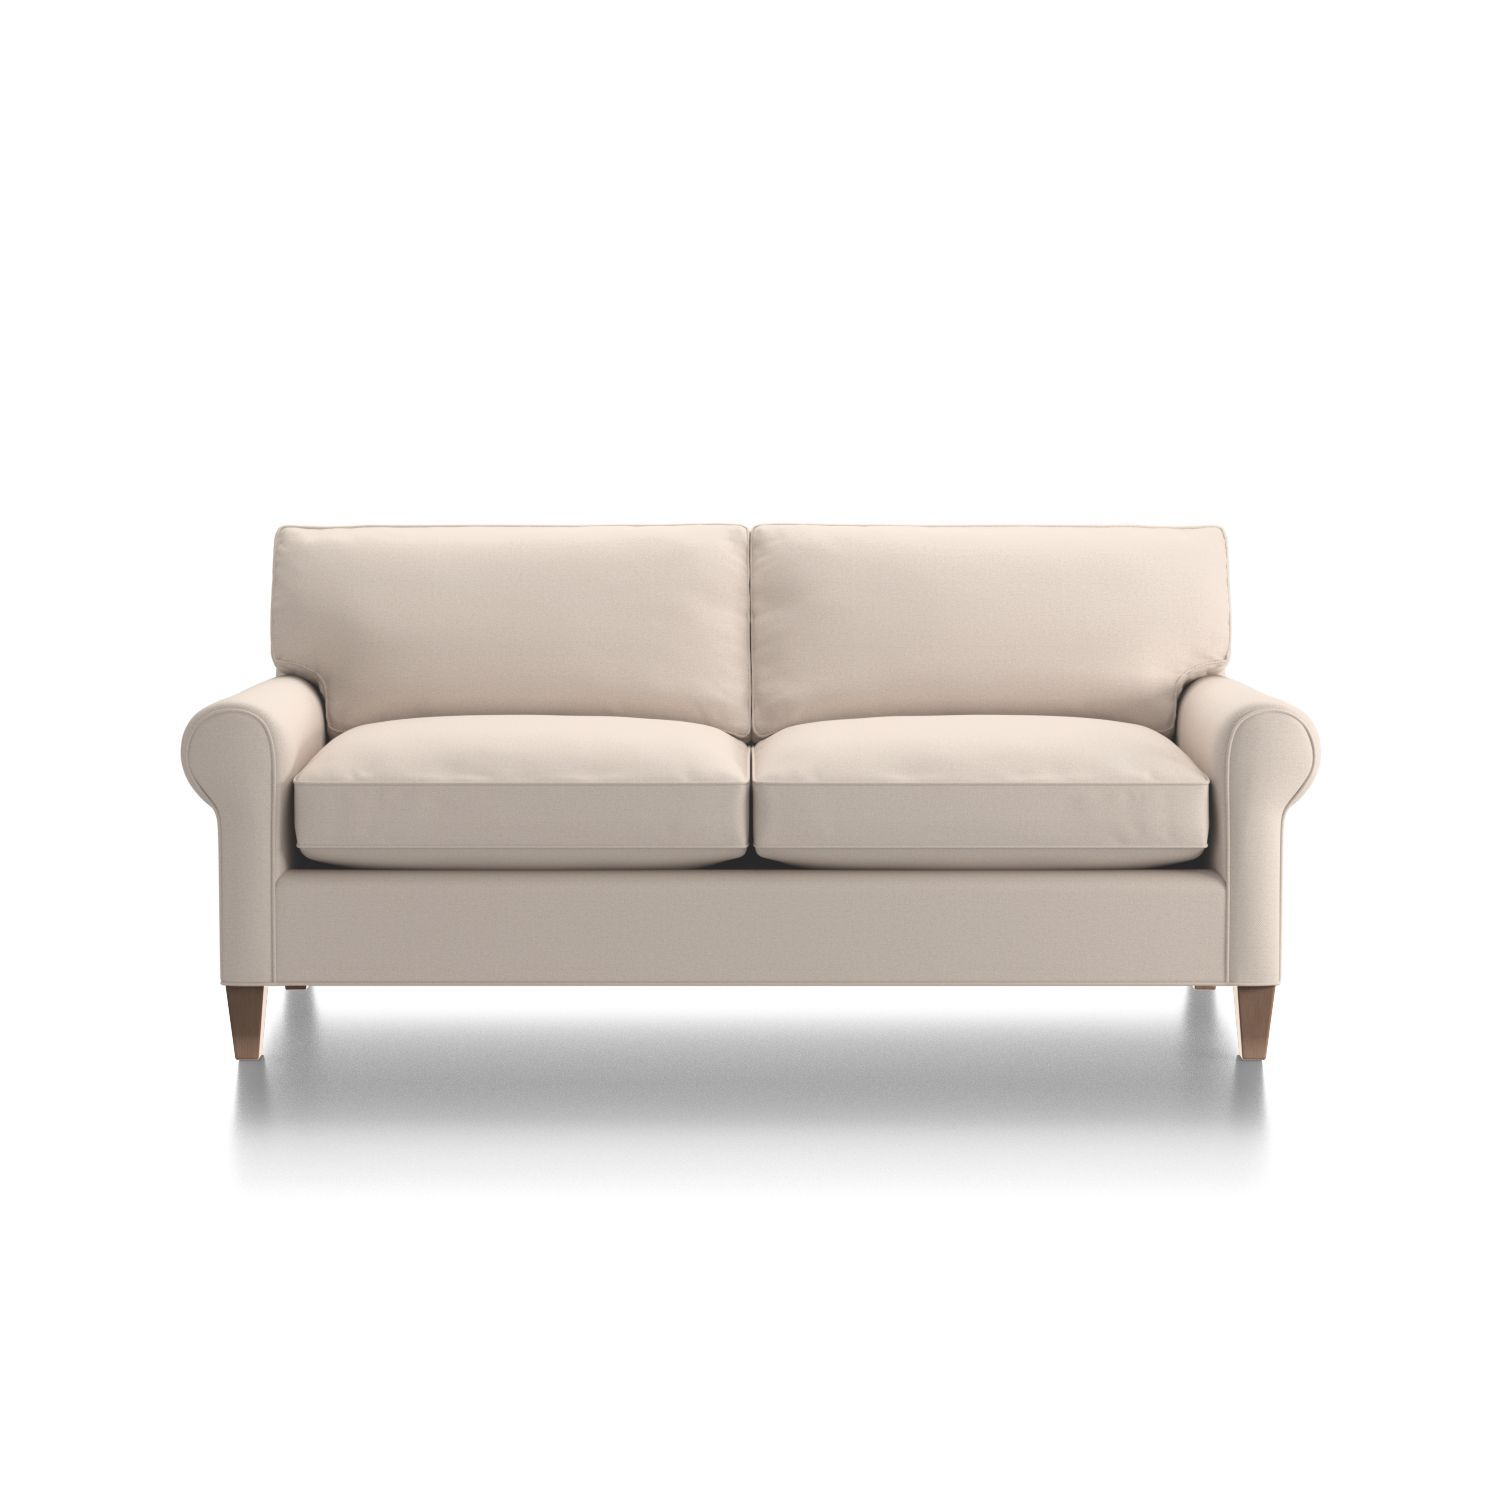 Shop Montclair Condo Size Sofa Soft But Supportive Cushions Are